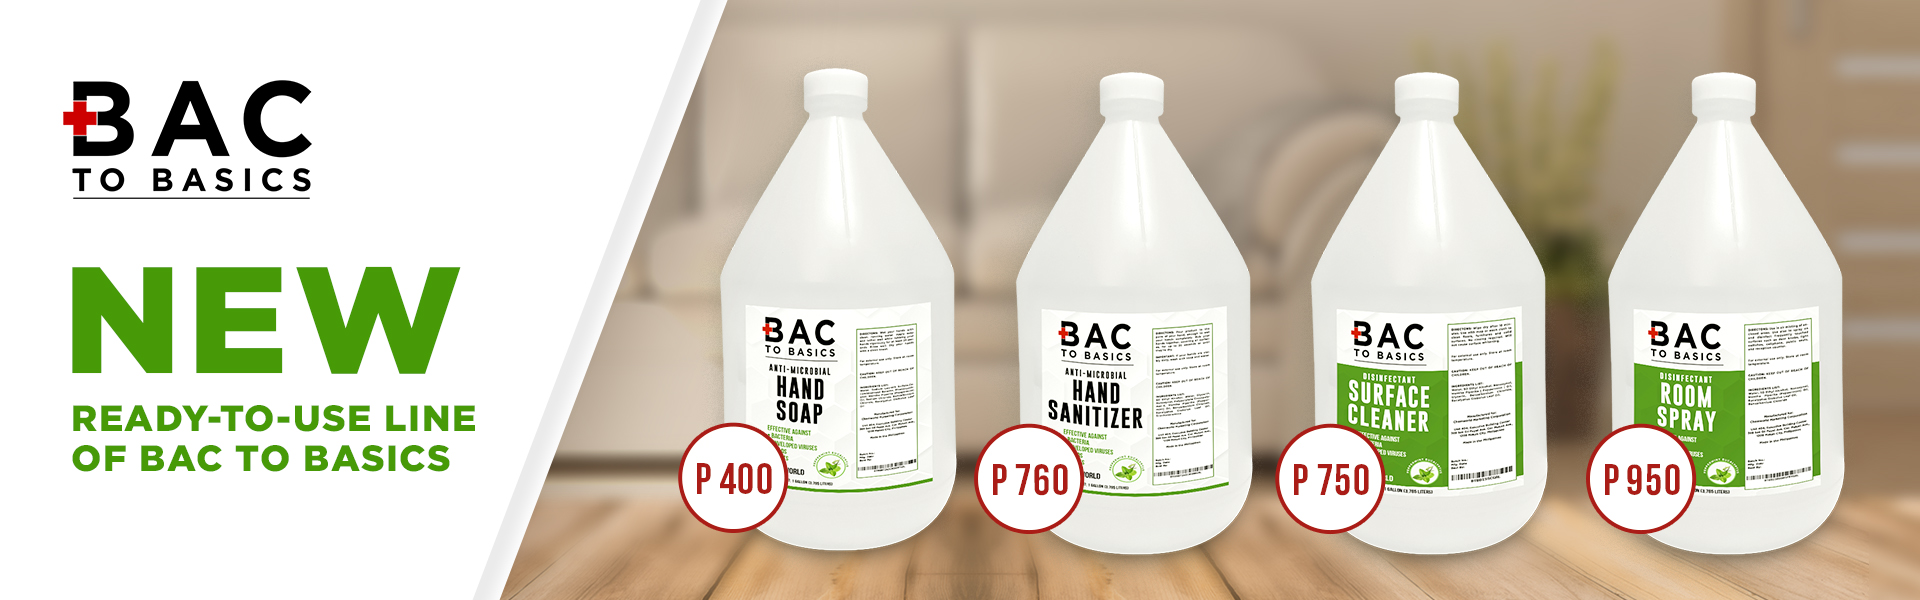 bac to basics full products line webstore banner (2)